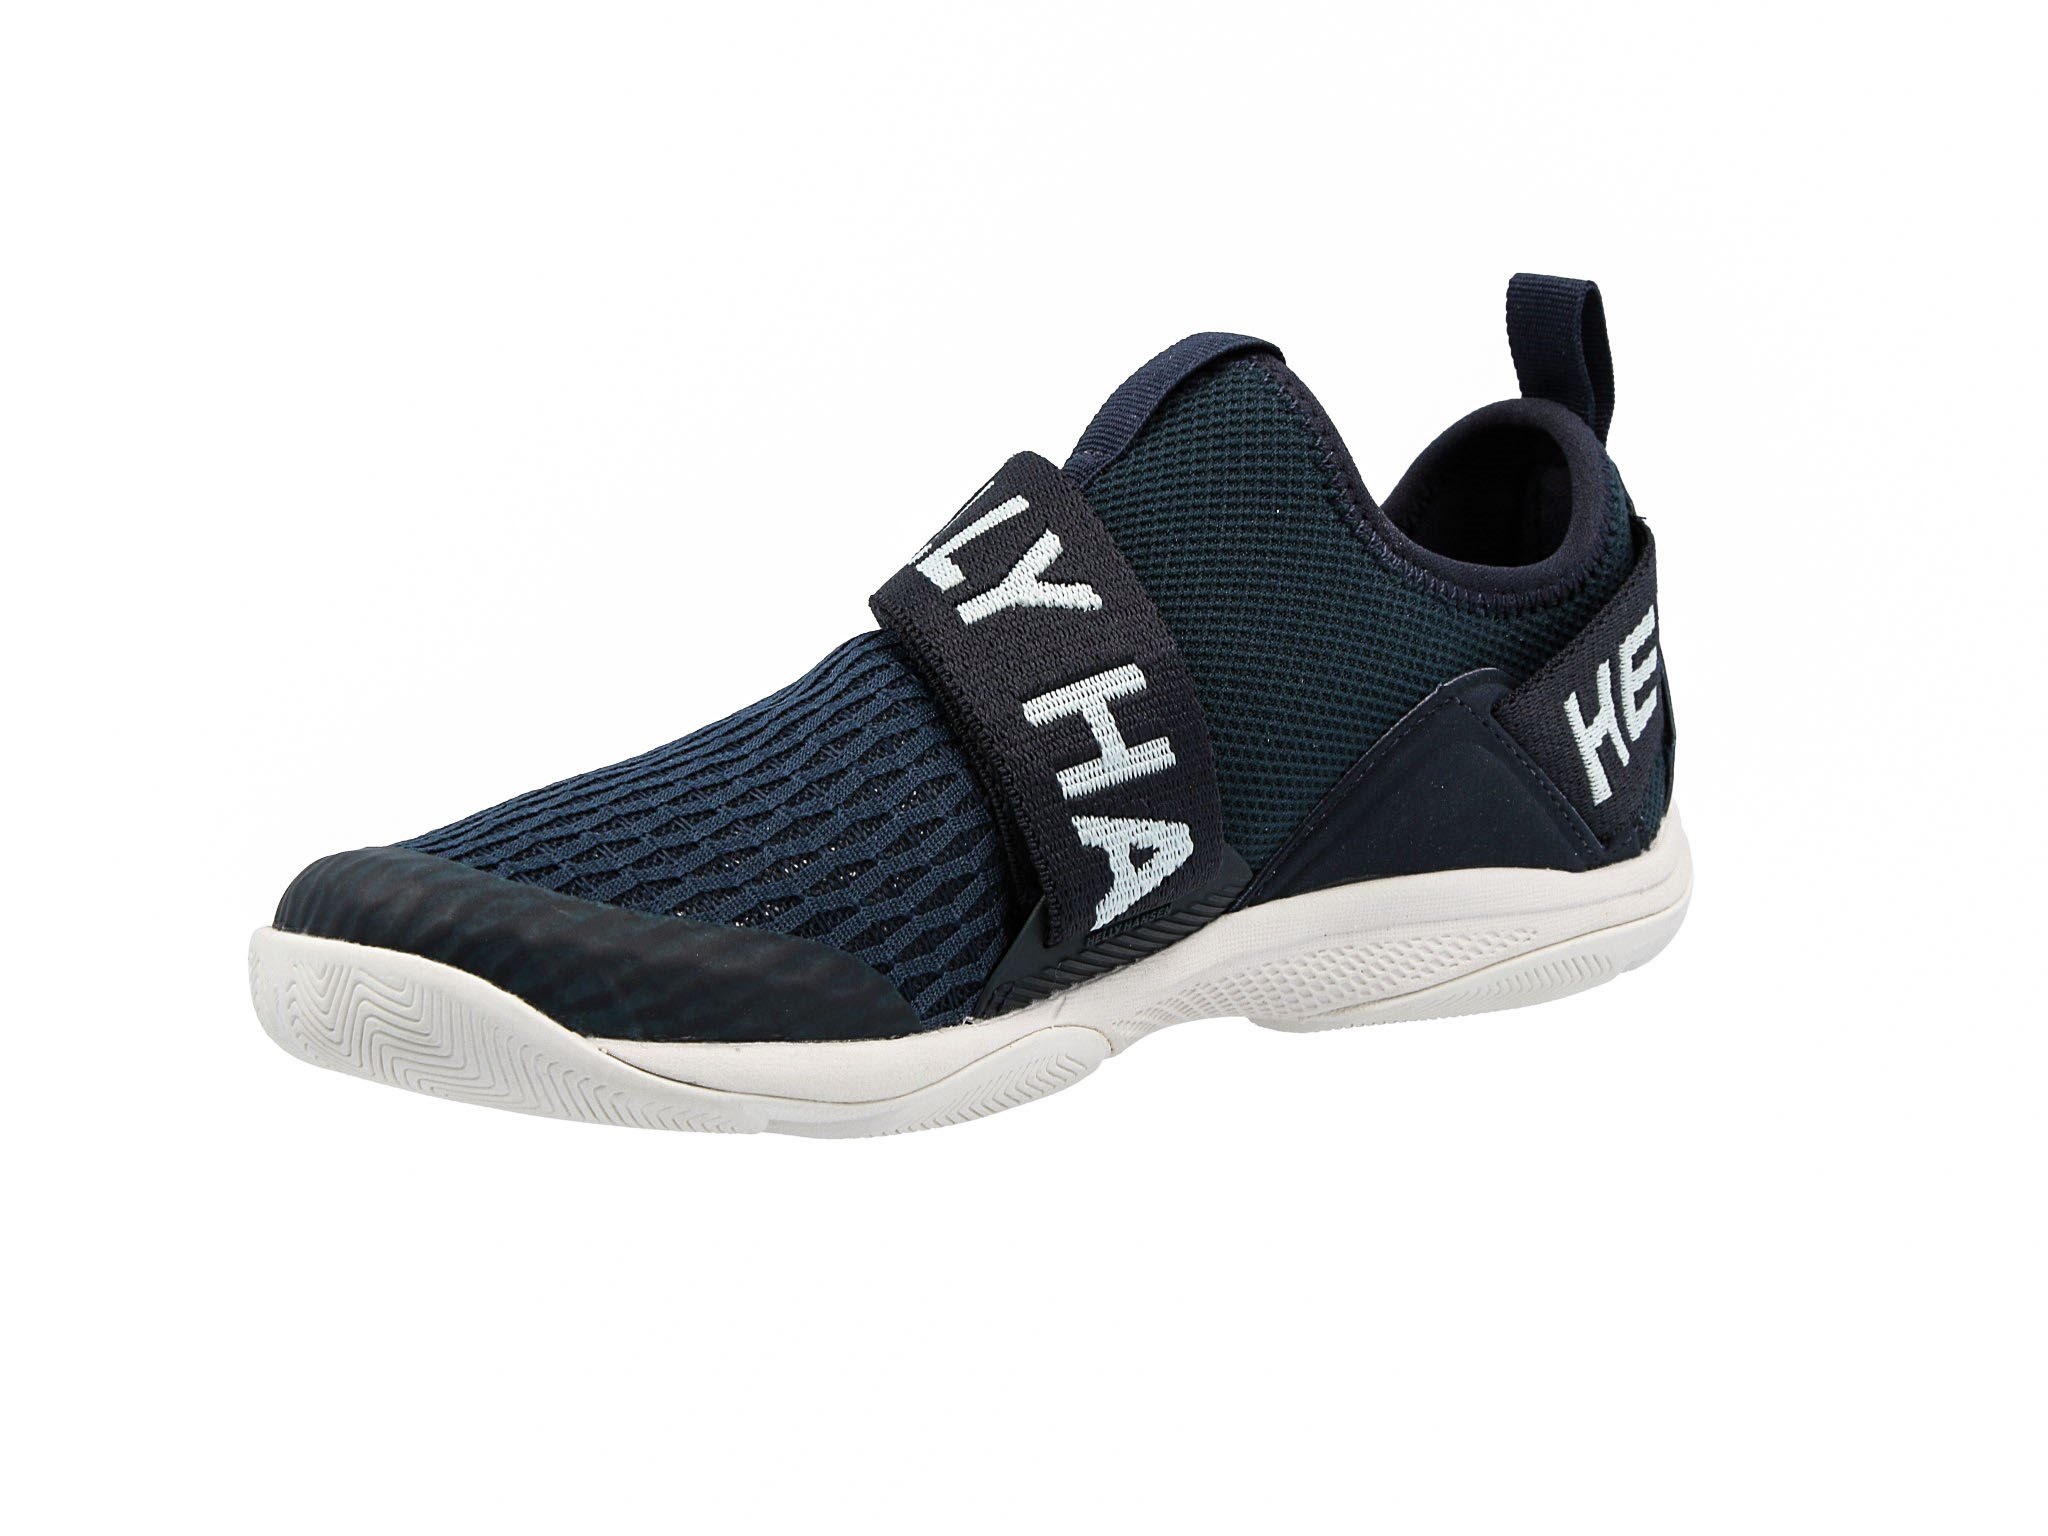 Buty HELLY HANSEN Hydromoc Slip On Shoe 114 68.597 NavyBleached AquaOff White